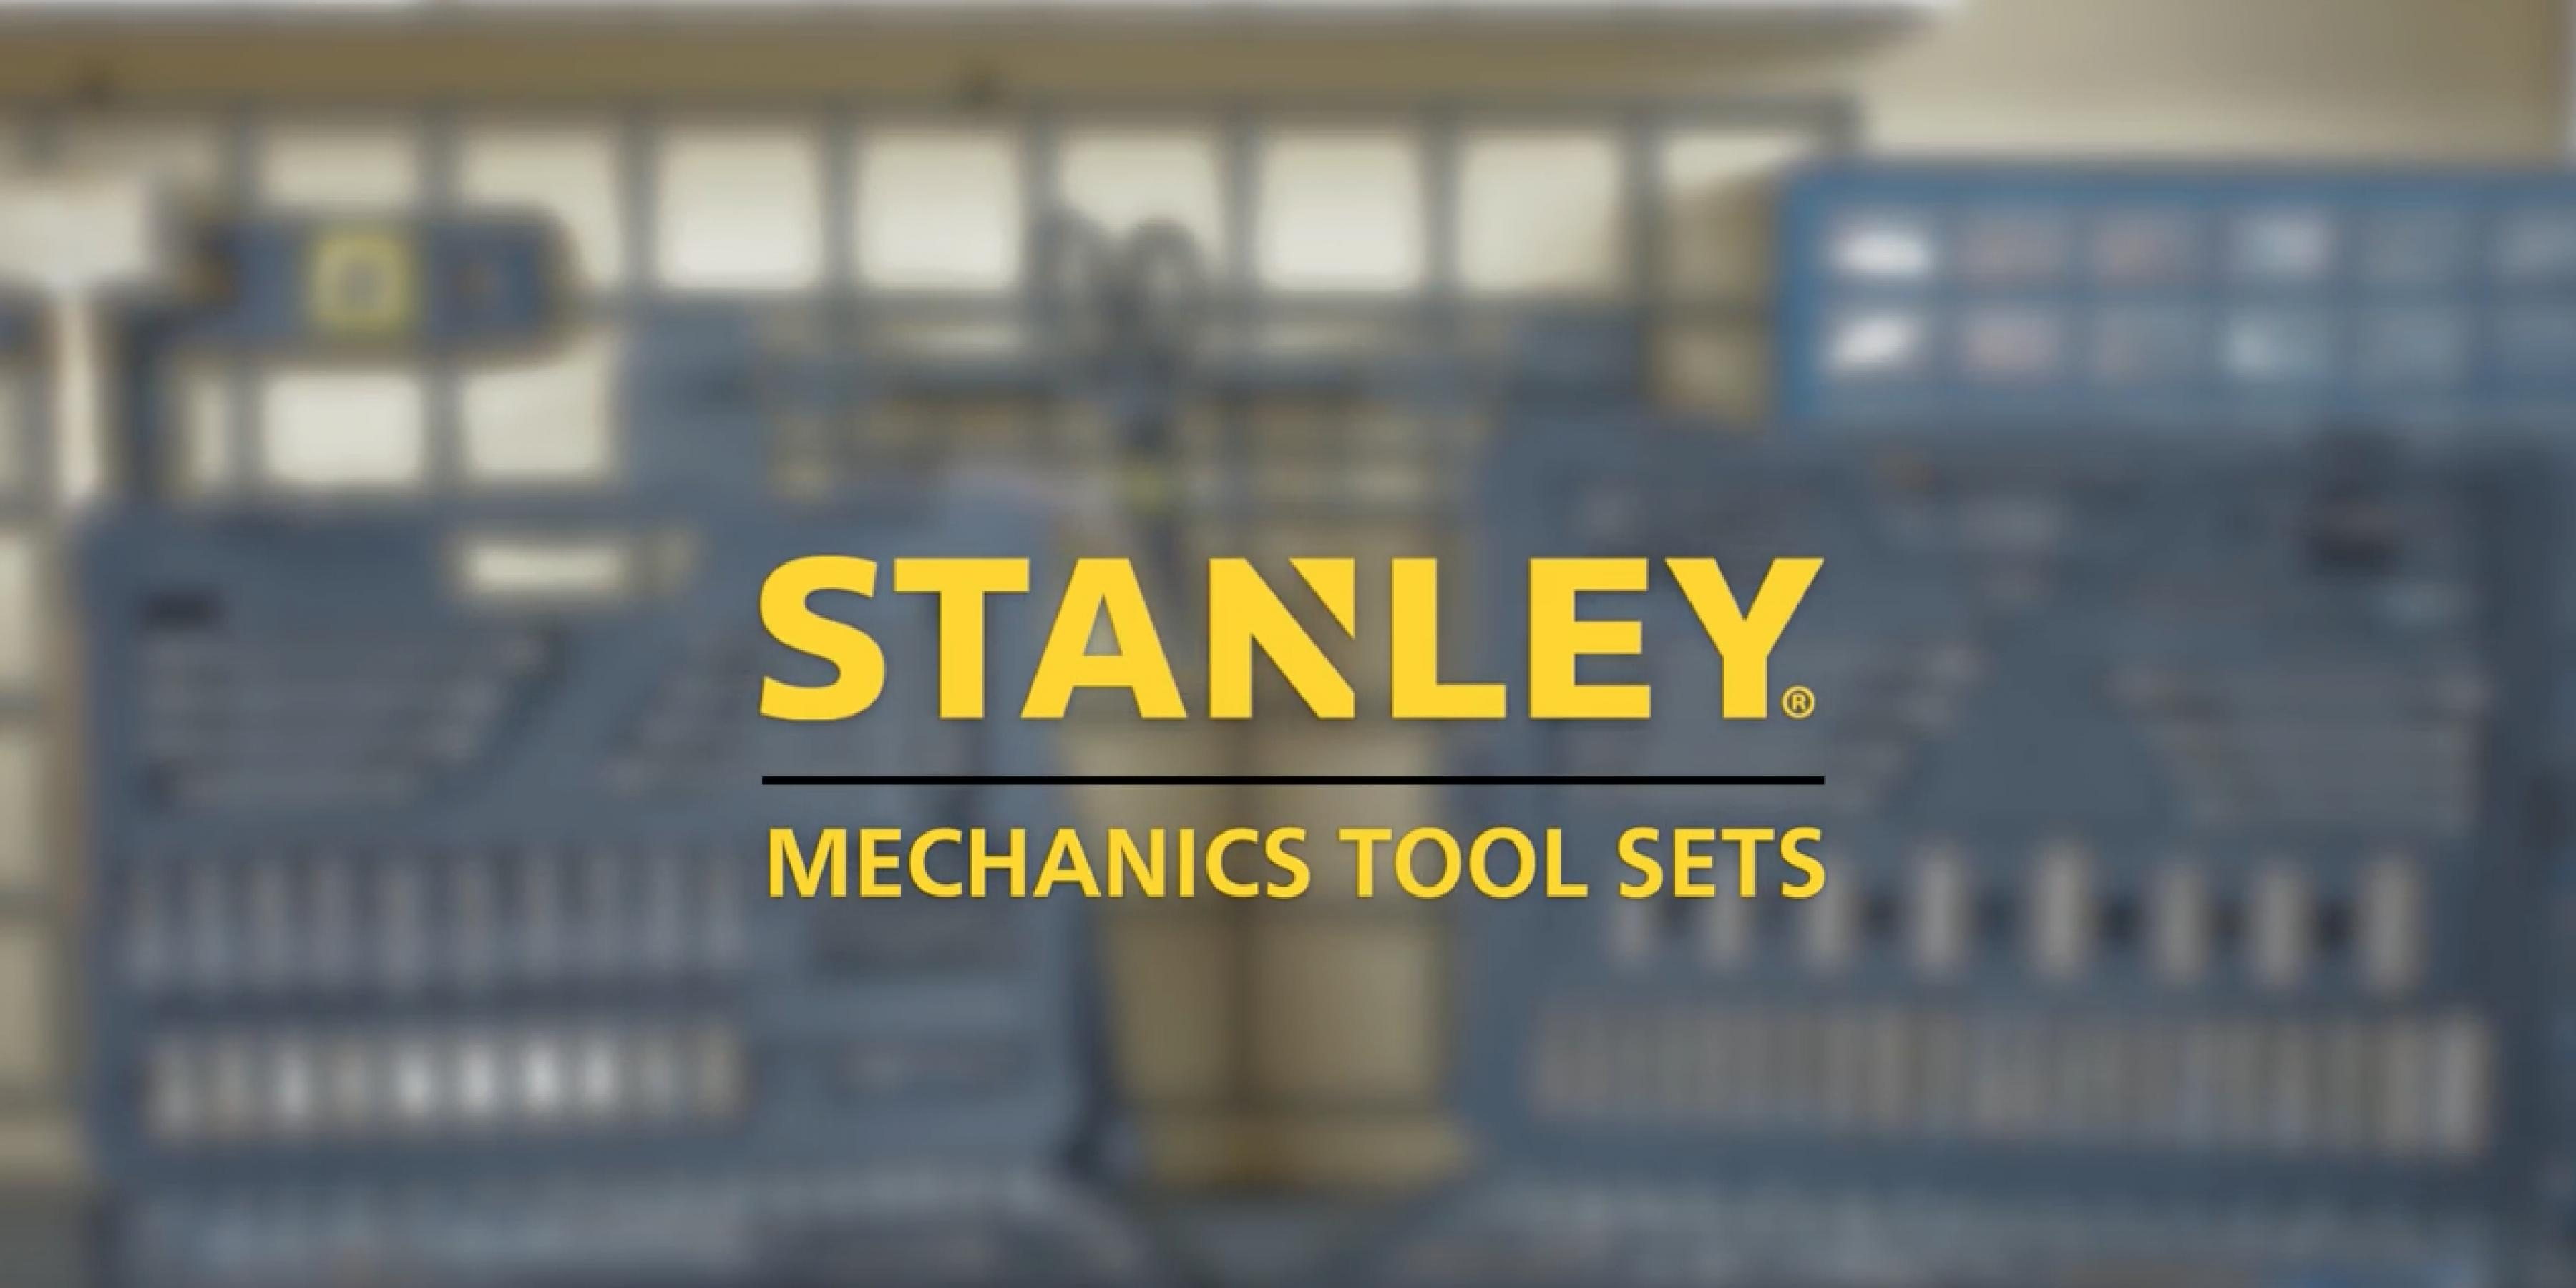 New STANLEY Mechanics Tool Sets